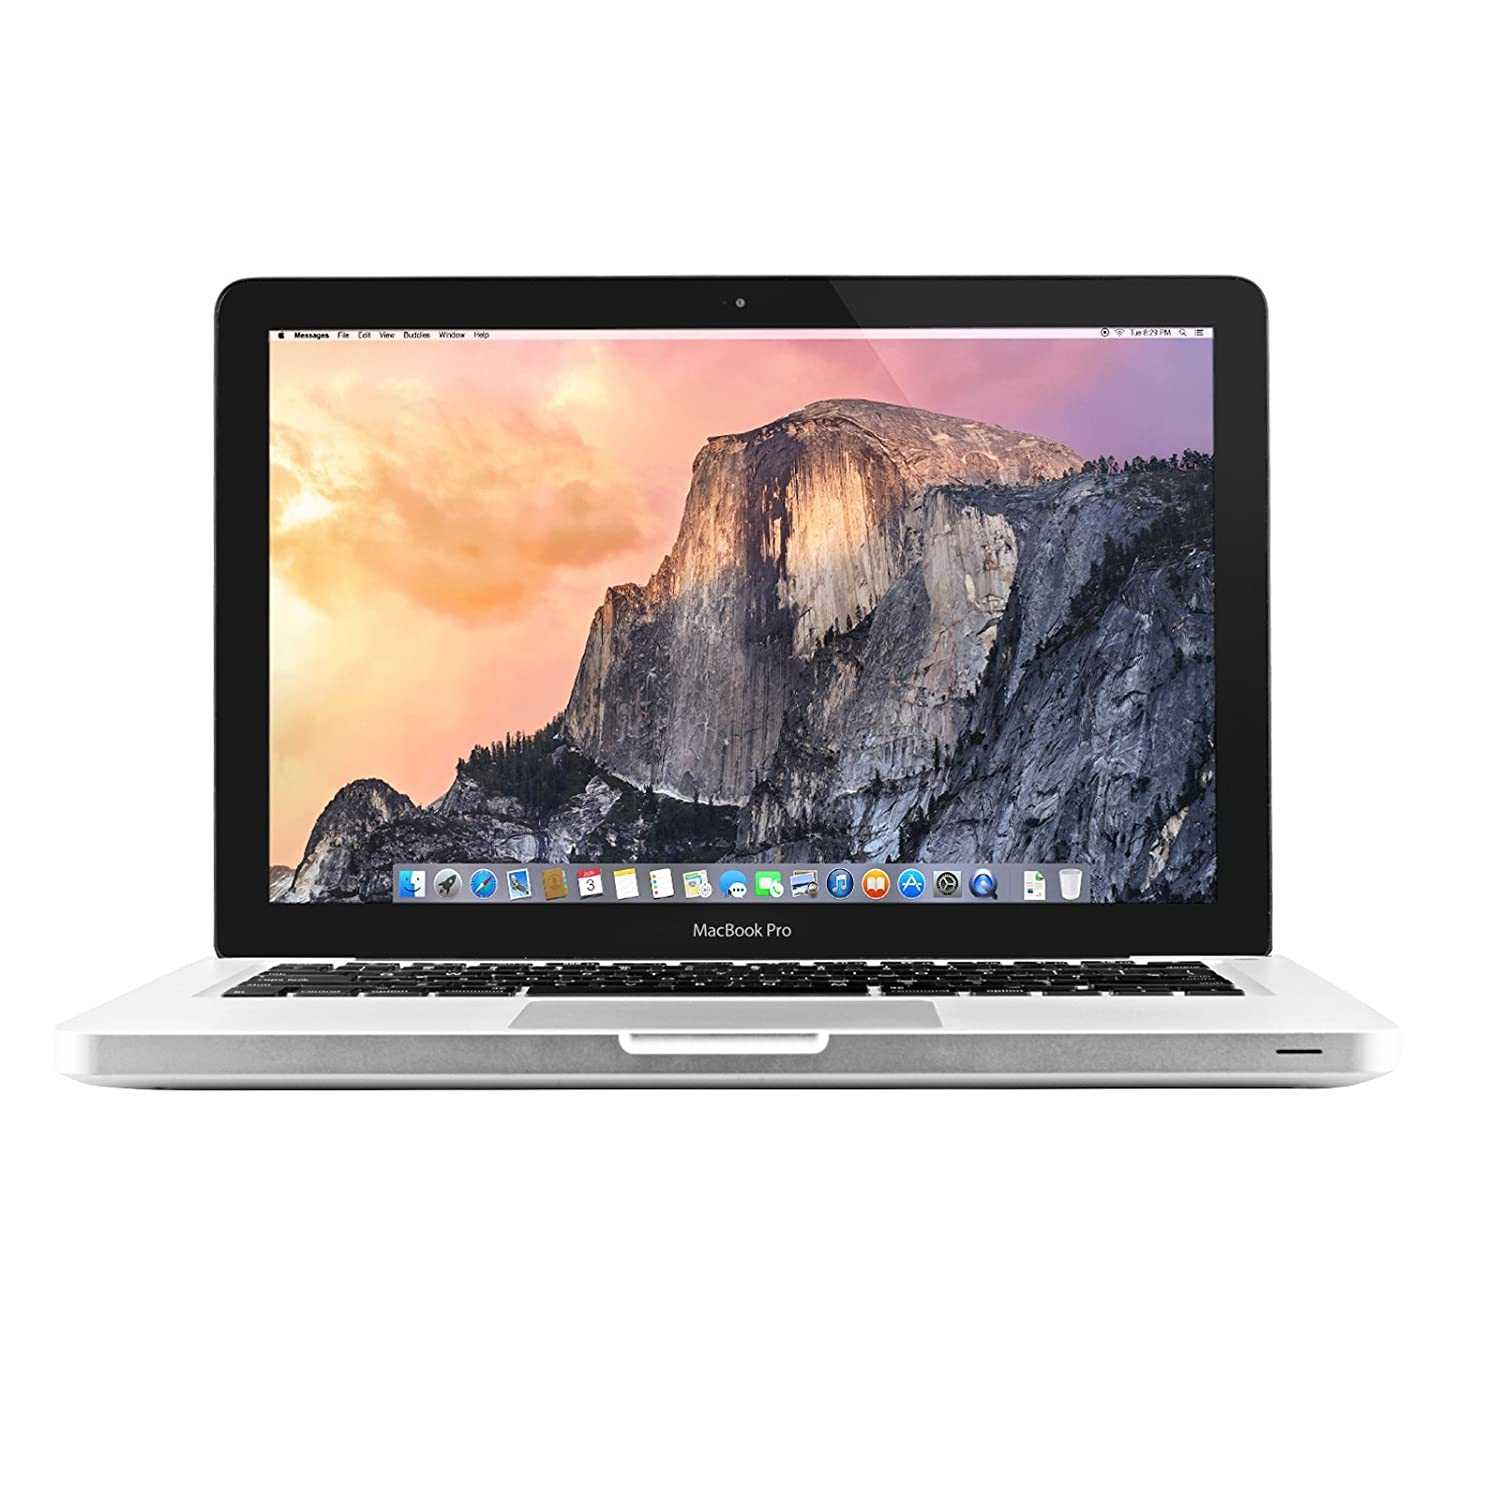 Apple MacBook Pro MD313LL/A 13.3-Inch Laptop Intel i5 2.4GHz 4GB Ram – 500GB HDD (Renewed)